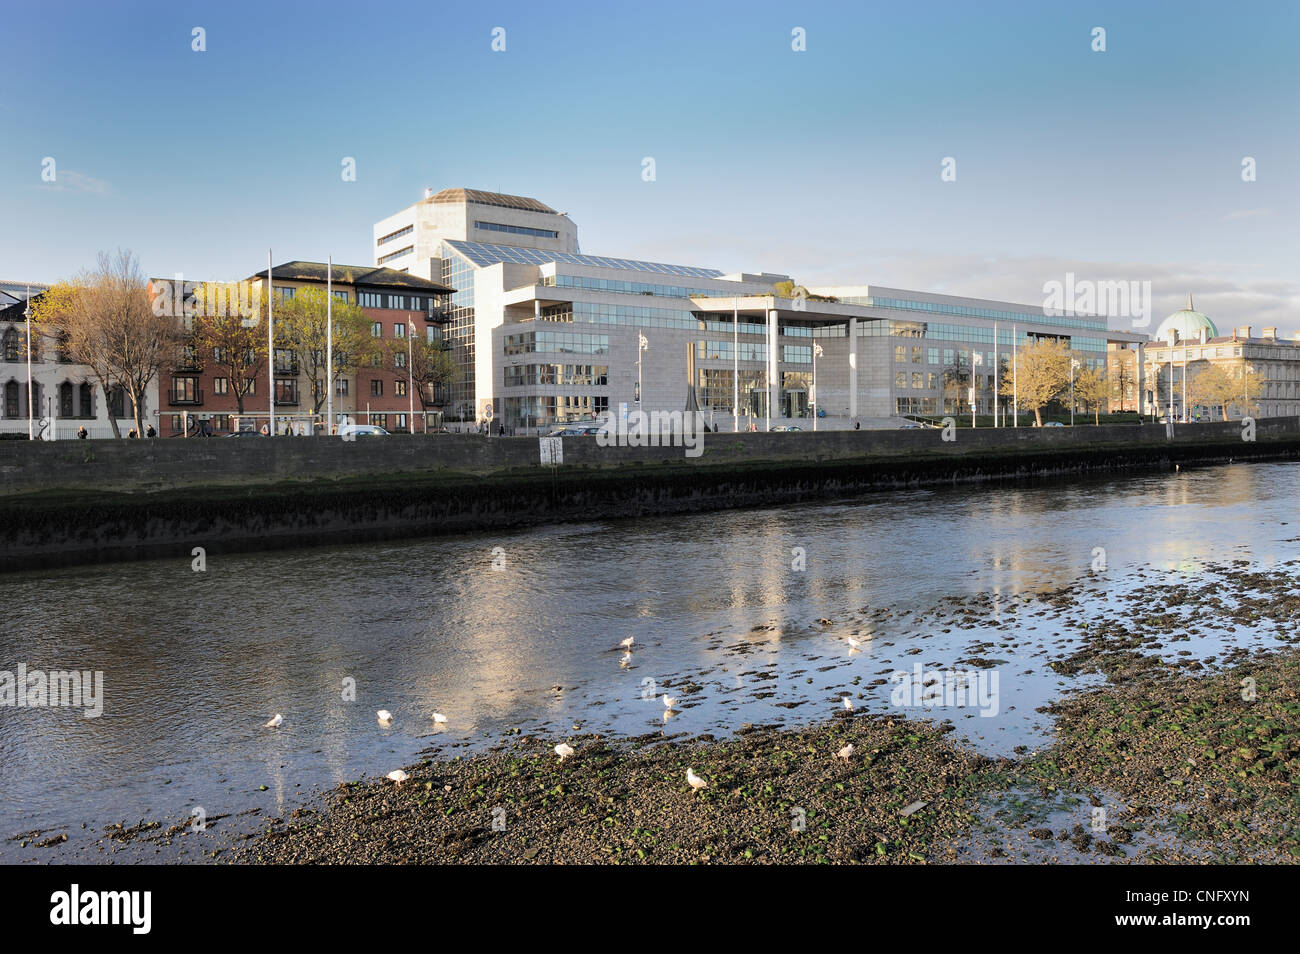 Civic Offices, Wood Quay, Dublin, Ireland at low tide. - Stock Image